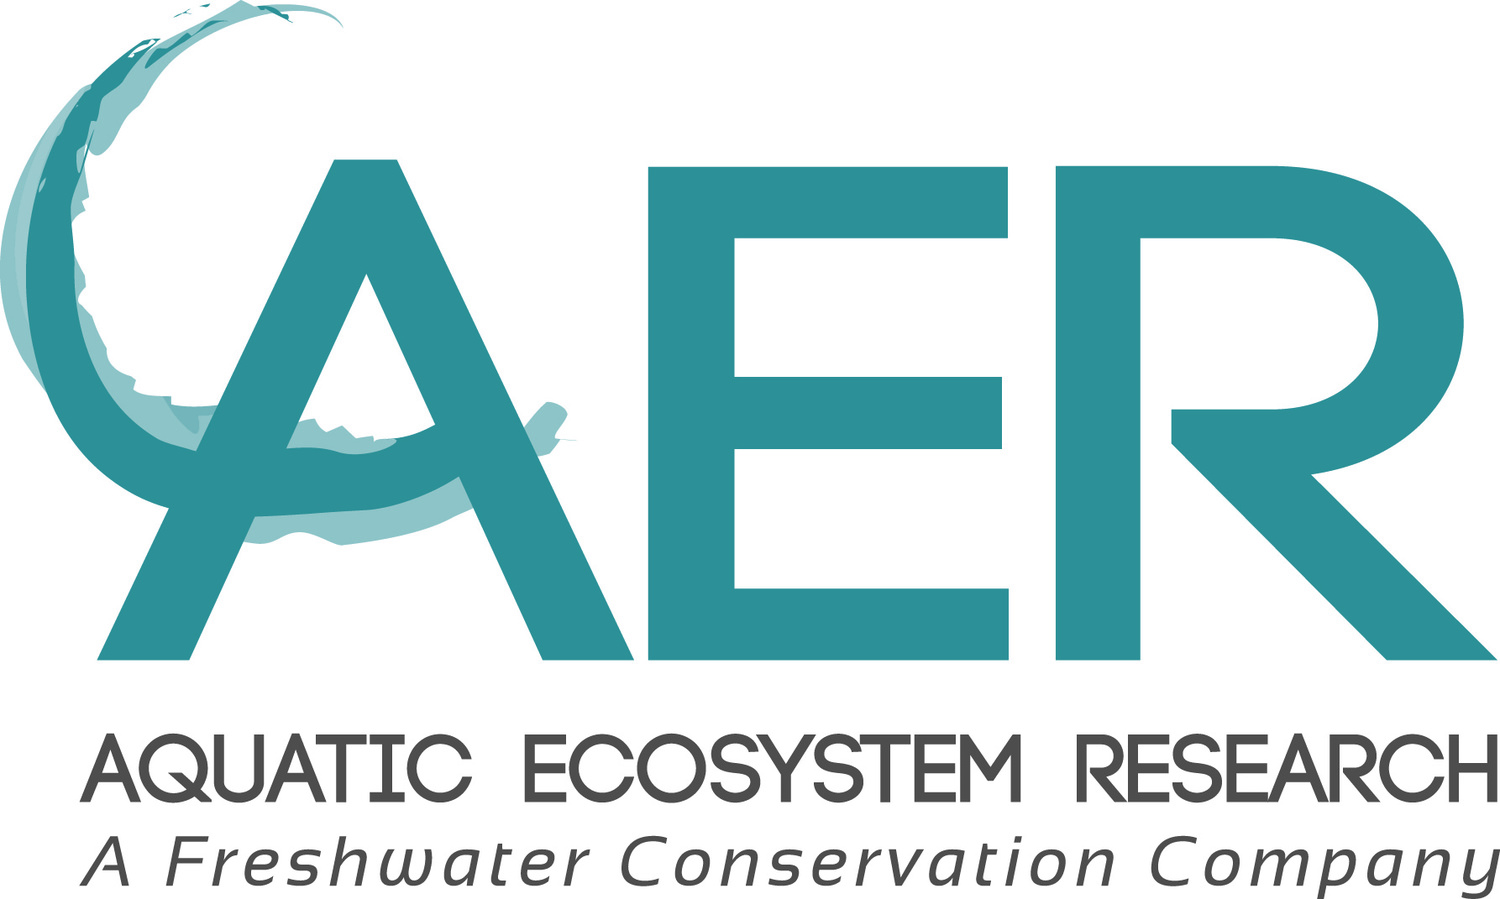 Aquatic Ecosystem Research LLC